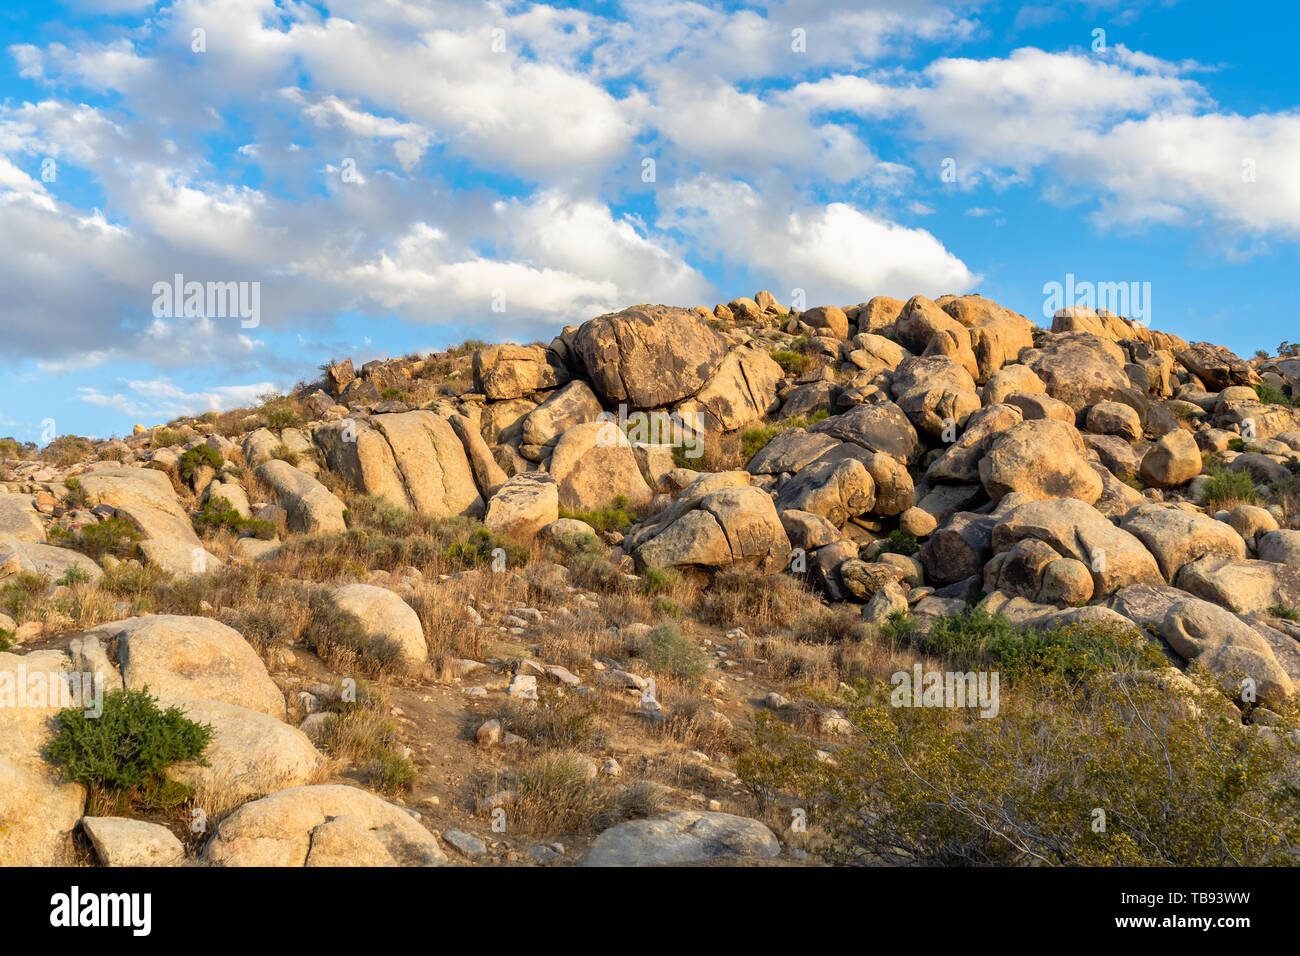 Boulder formation hill at  Apple Valley, California,  in the Mojave Desert. Stock Photo